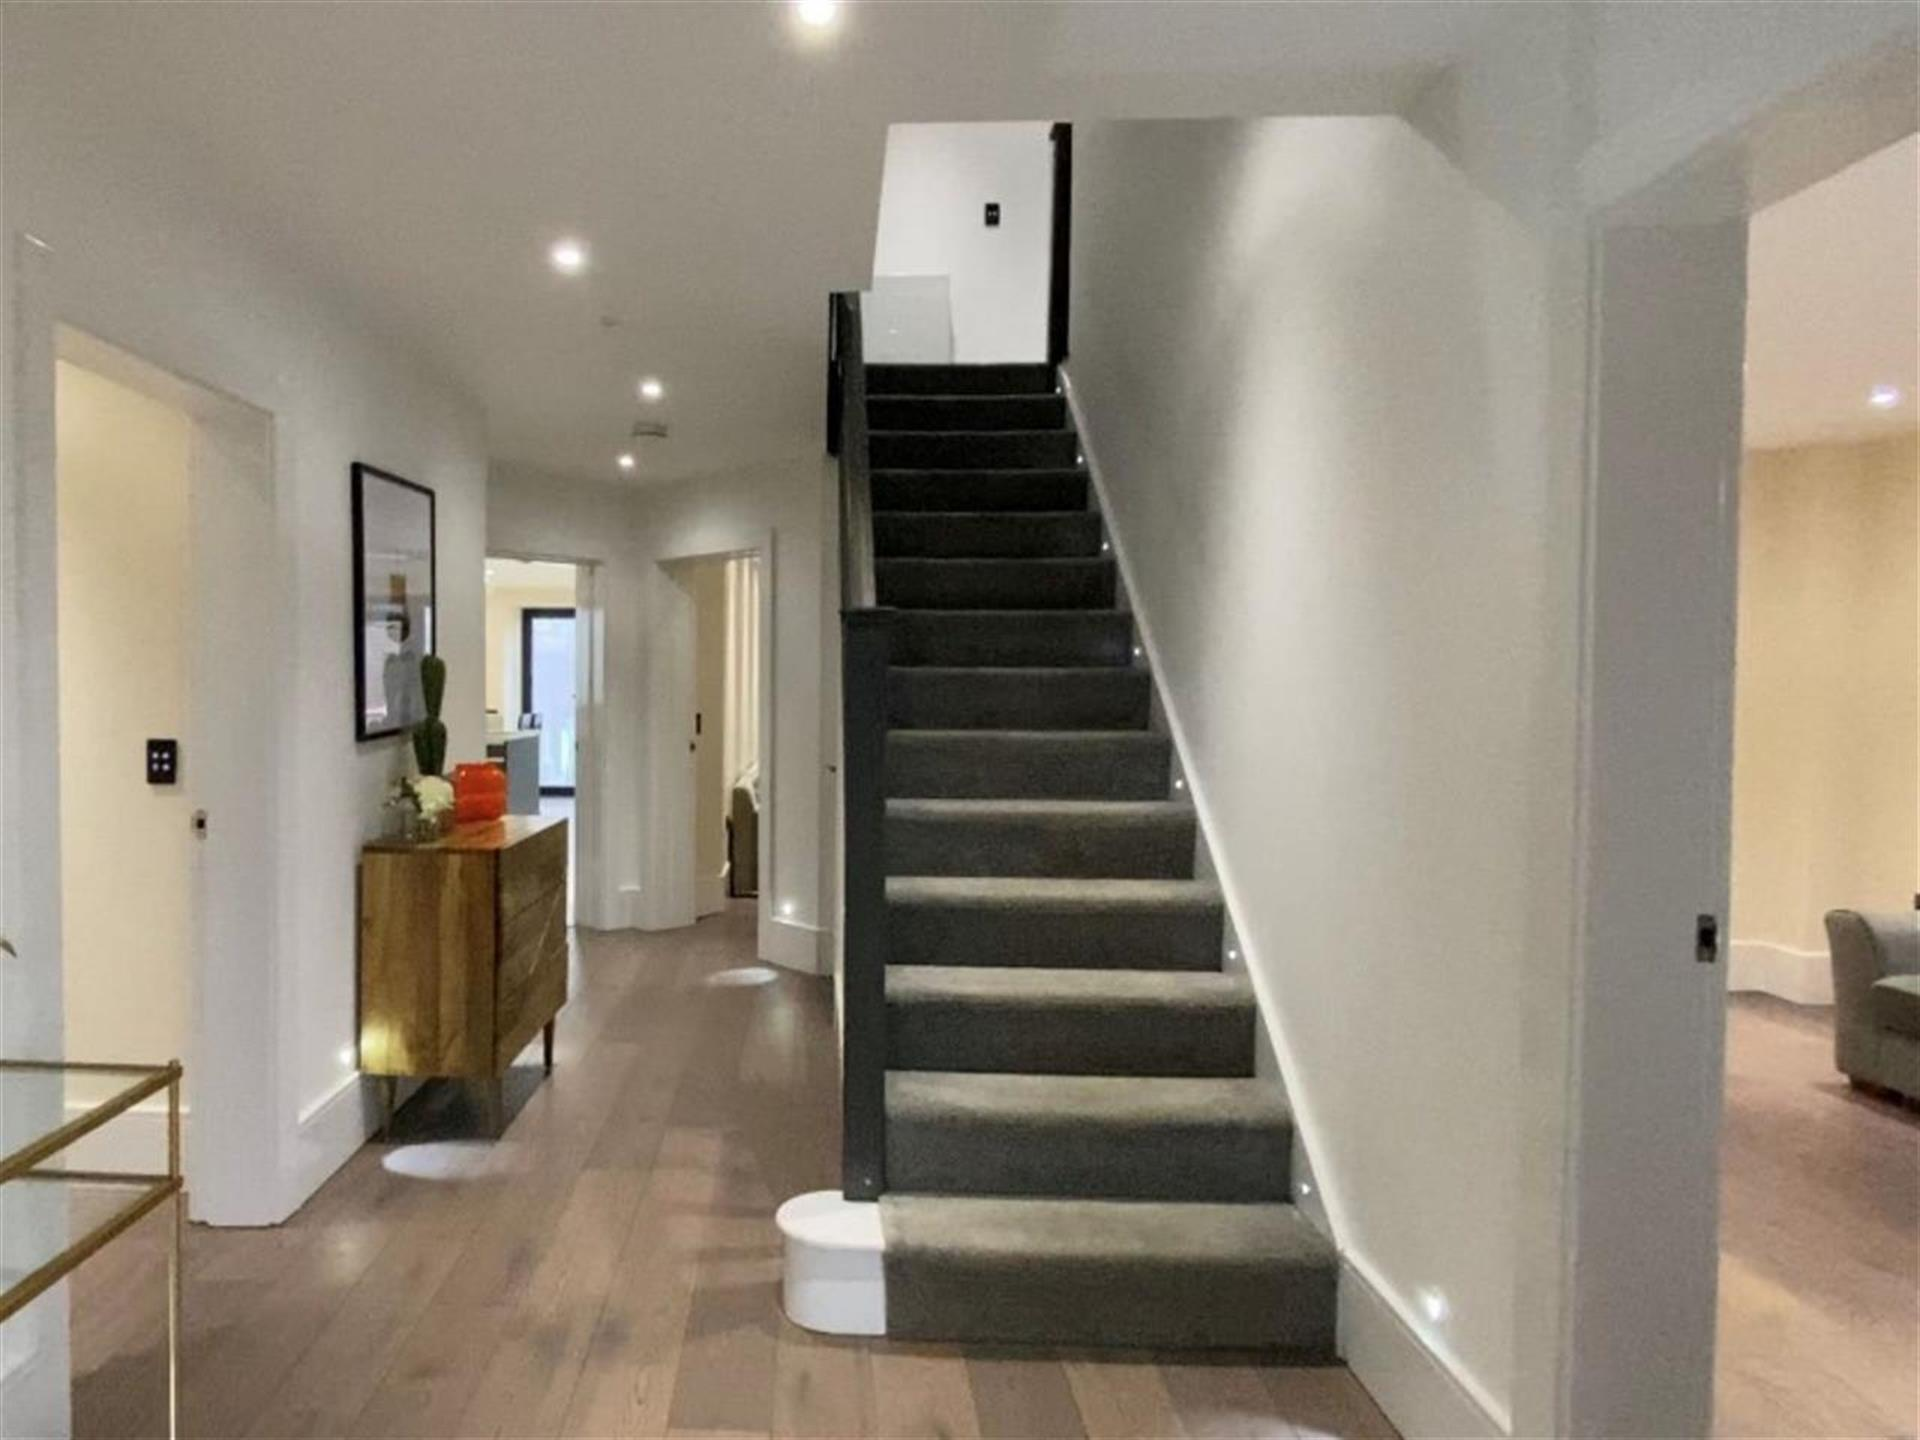 6 Bedroom Detached House For Sale - Entrance Hallway